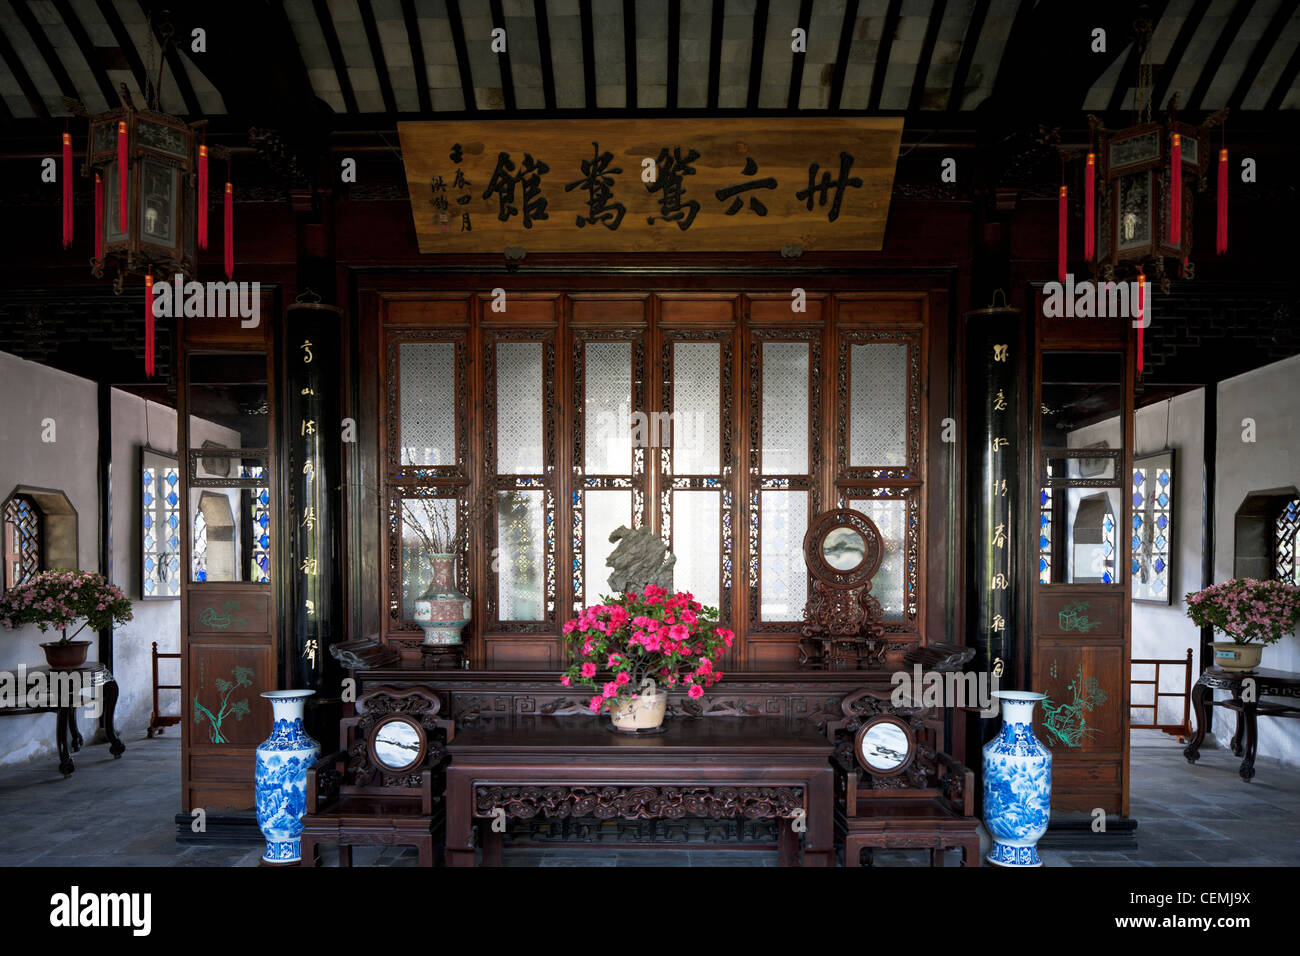 China,suzhou,Jiangsu Province,architecture,old,old Fashioned,Nostalgia, Chinese Culture, Symmetry,ancient,living Room, Furniture,